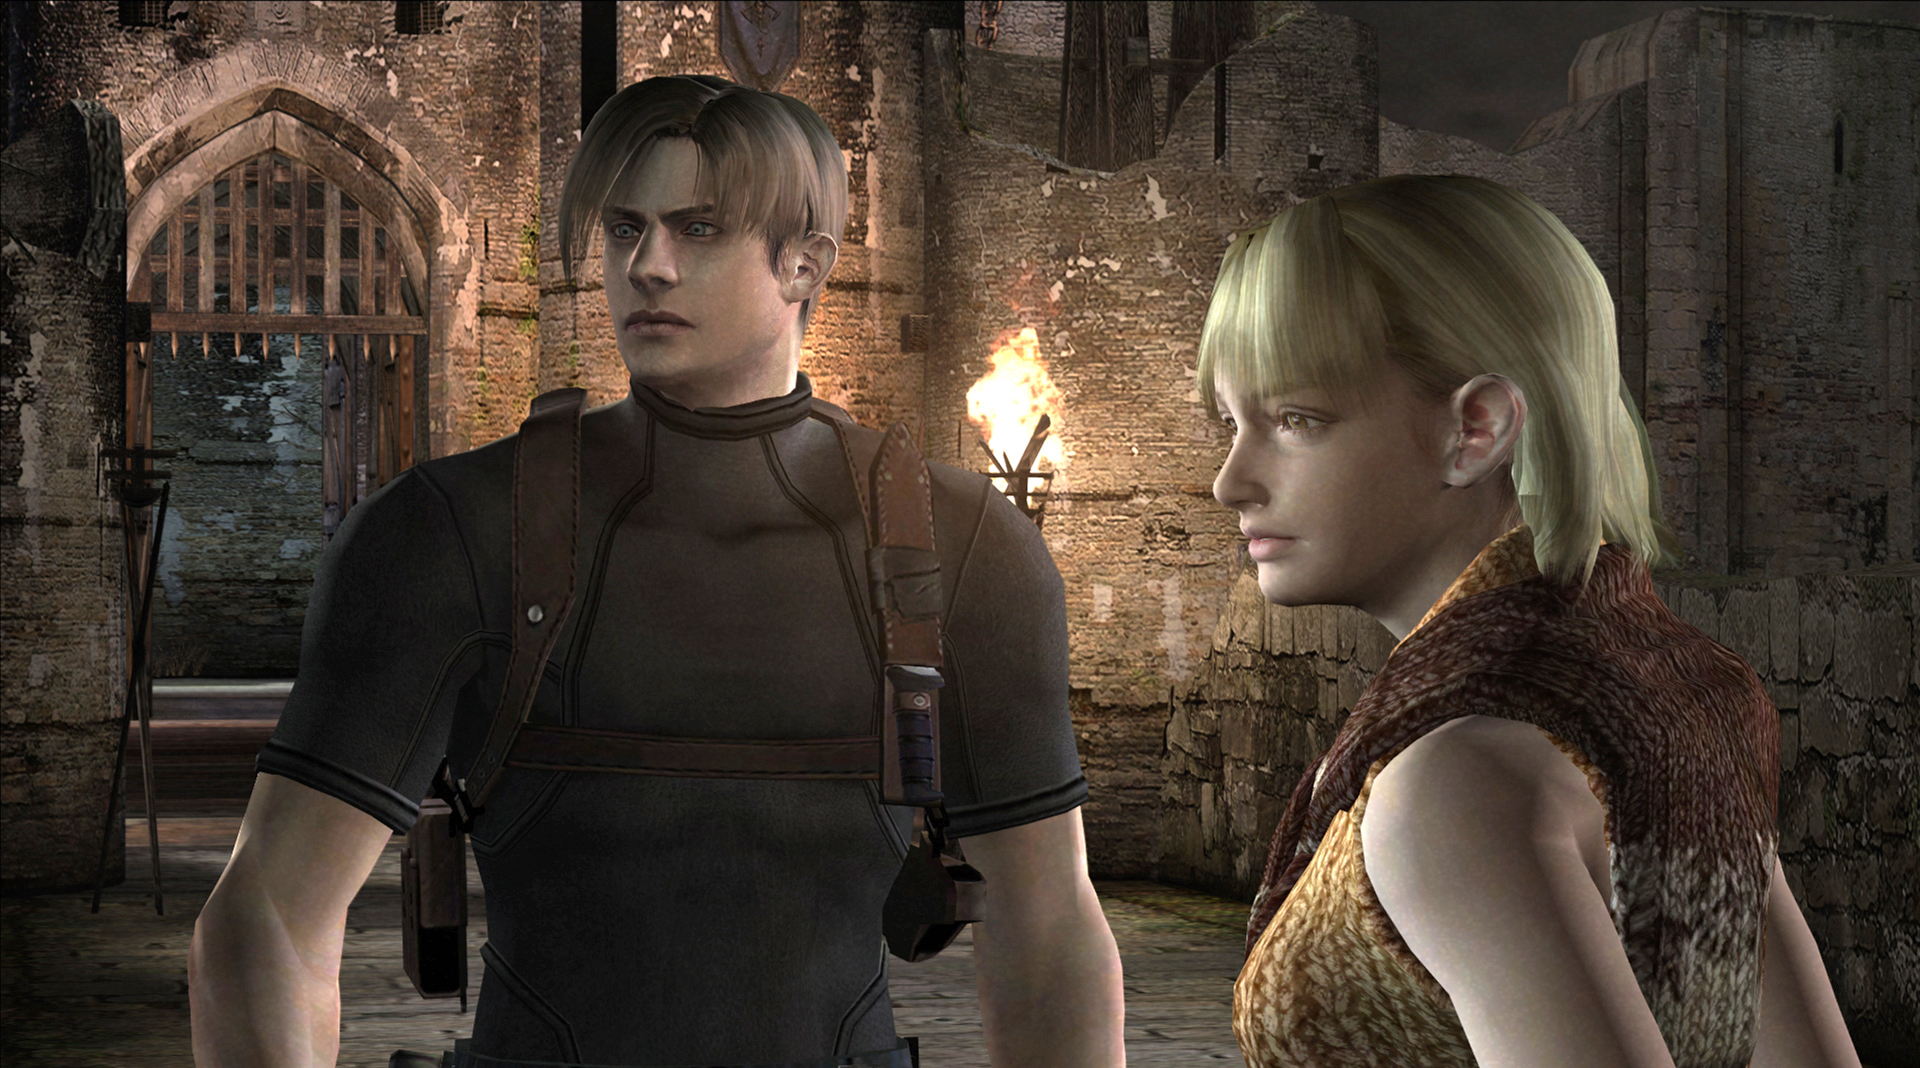 resident evil 4 / biohazard 4 System Requirements - Can I Run It